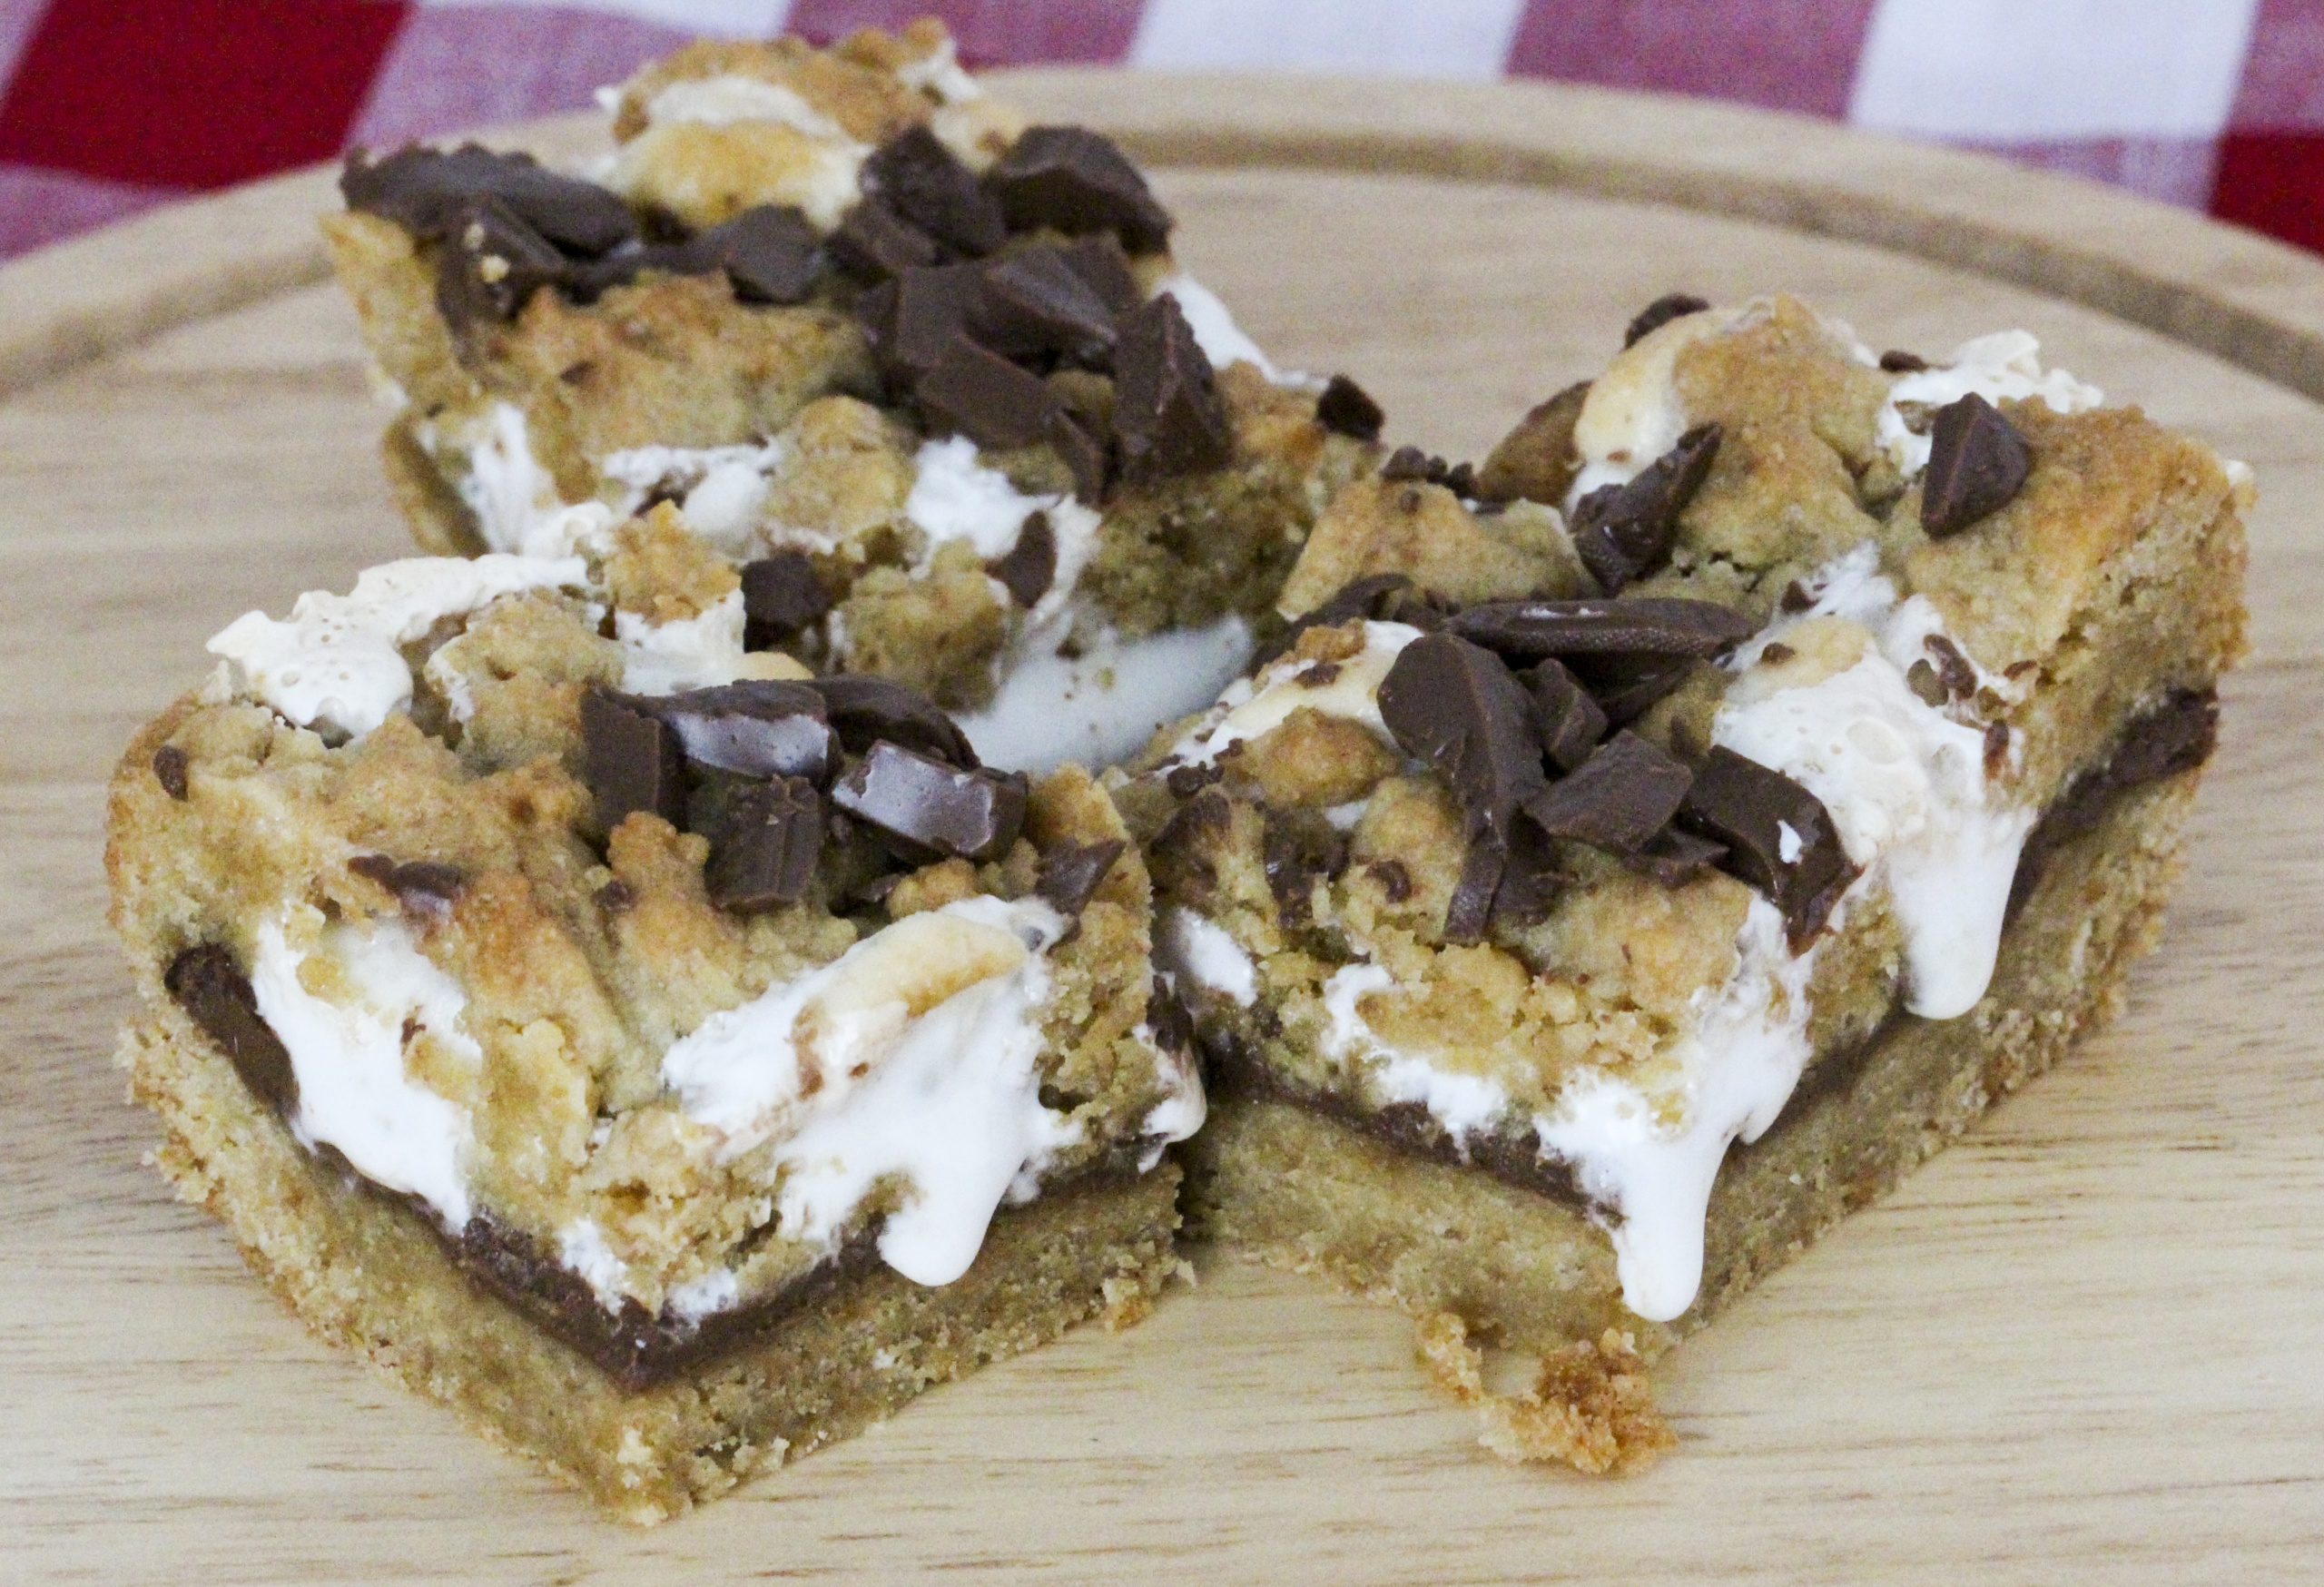 No campfires required! S'mores Cookie Bars have a graham cracker cookie dough base and topping, and a rich layer of iconic chocolate bars with gooey marshmallows. Recipe created by Cinnamon & Sugar for Catherine Bruns, author of KNEE DEEP IN DOUGH.